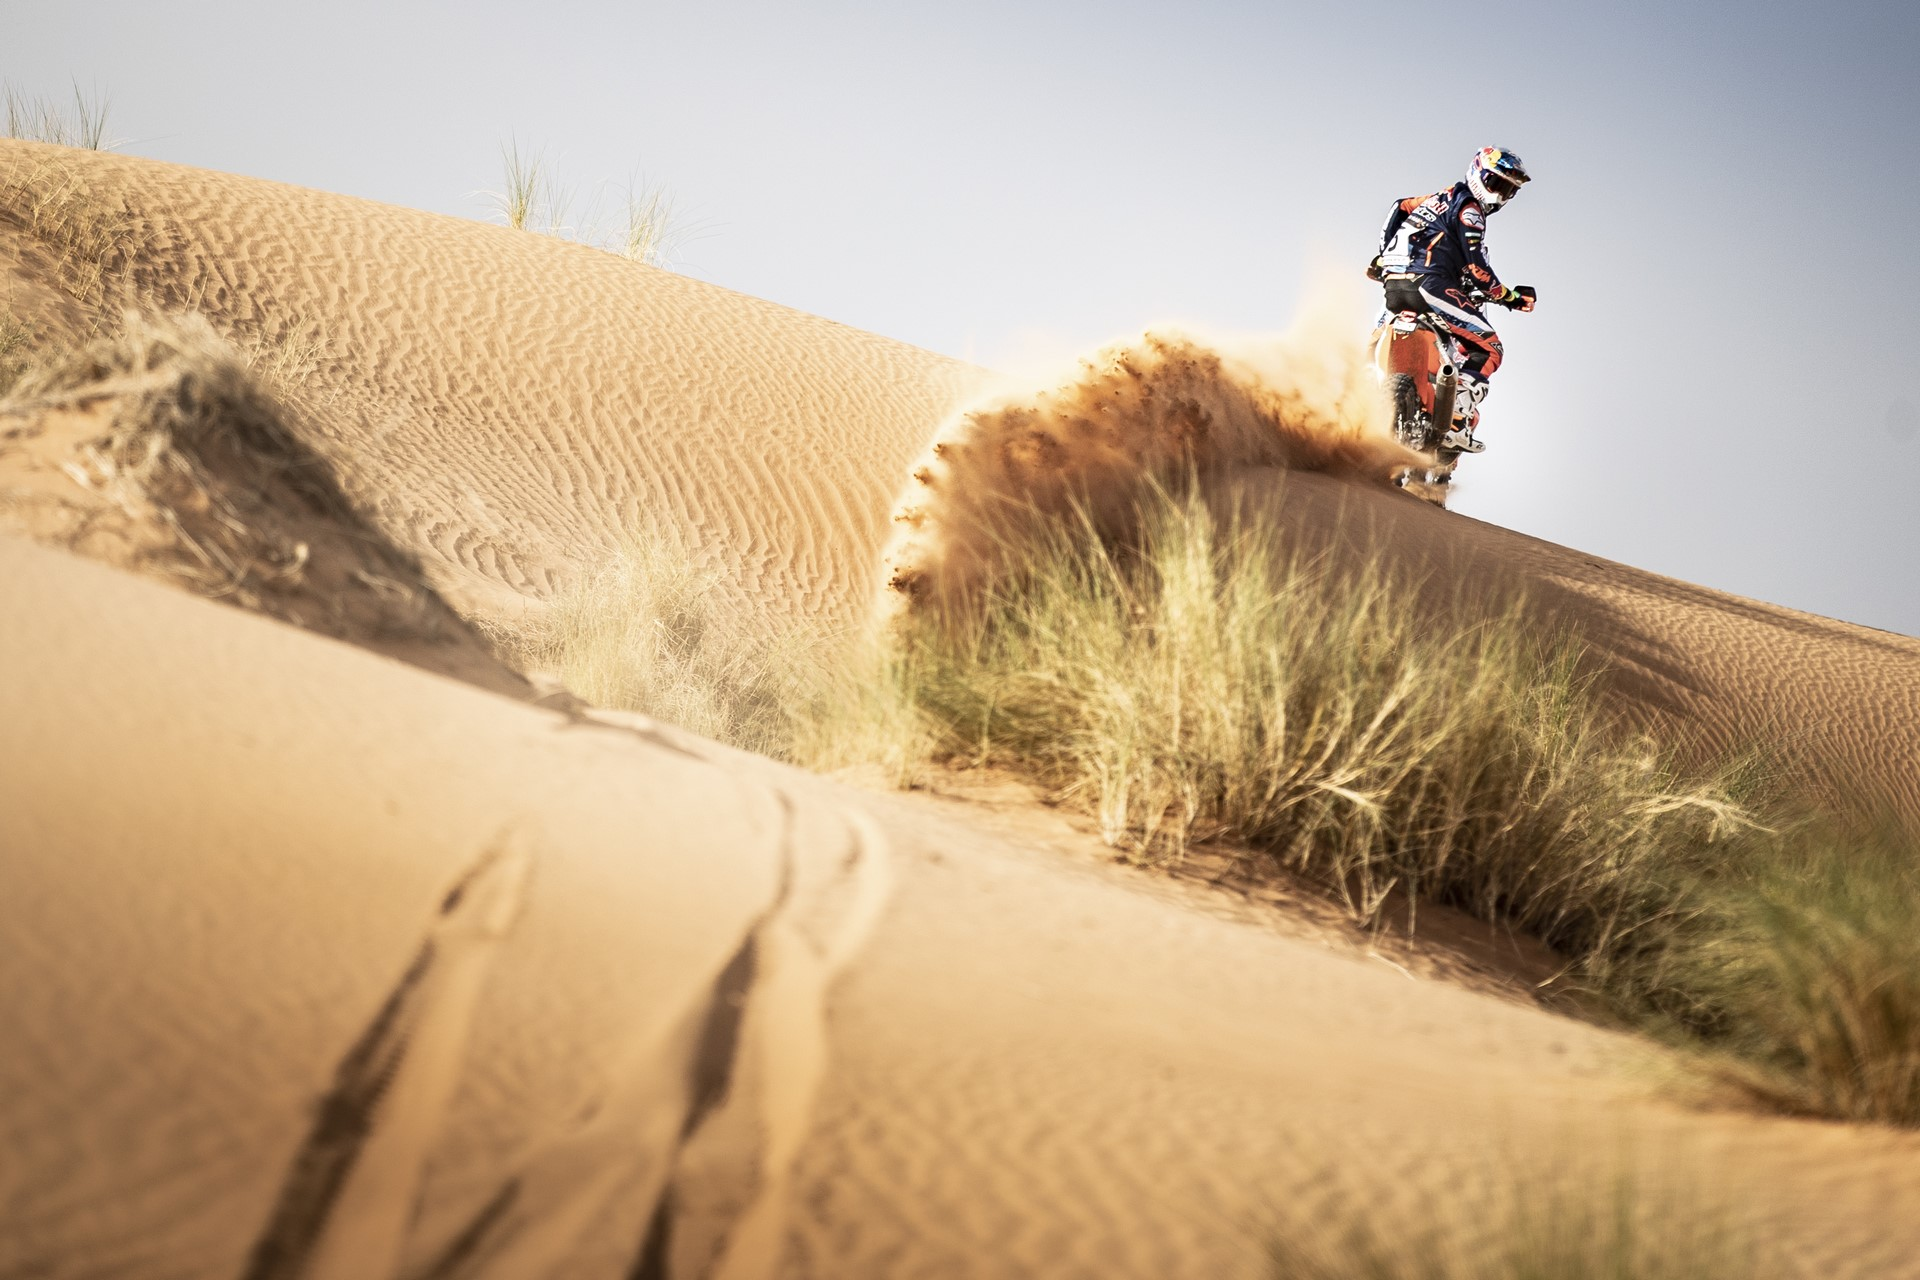 Sam Sunderland at the 2nd stage of Rally Du Maroc in Erfoud, Morocco on October 06, 2018